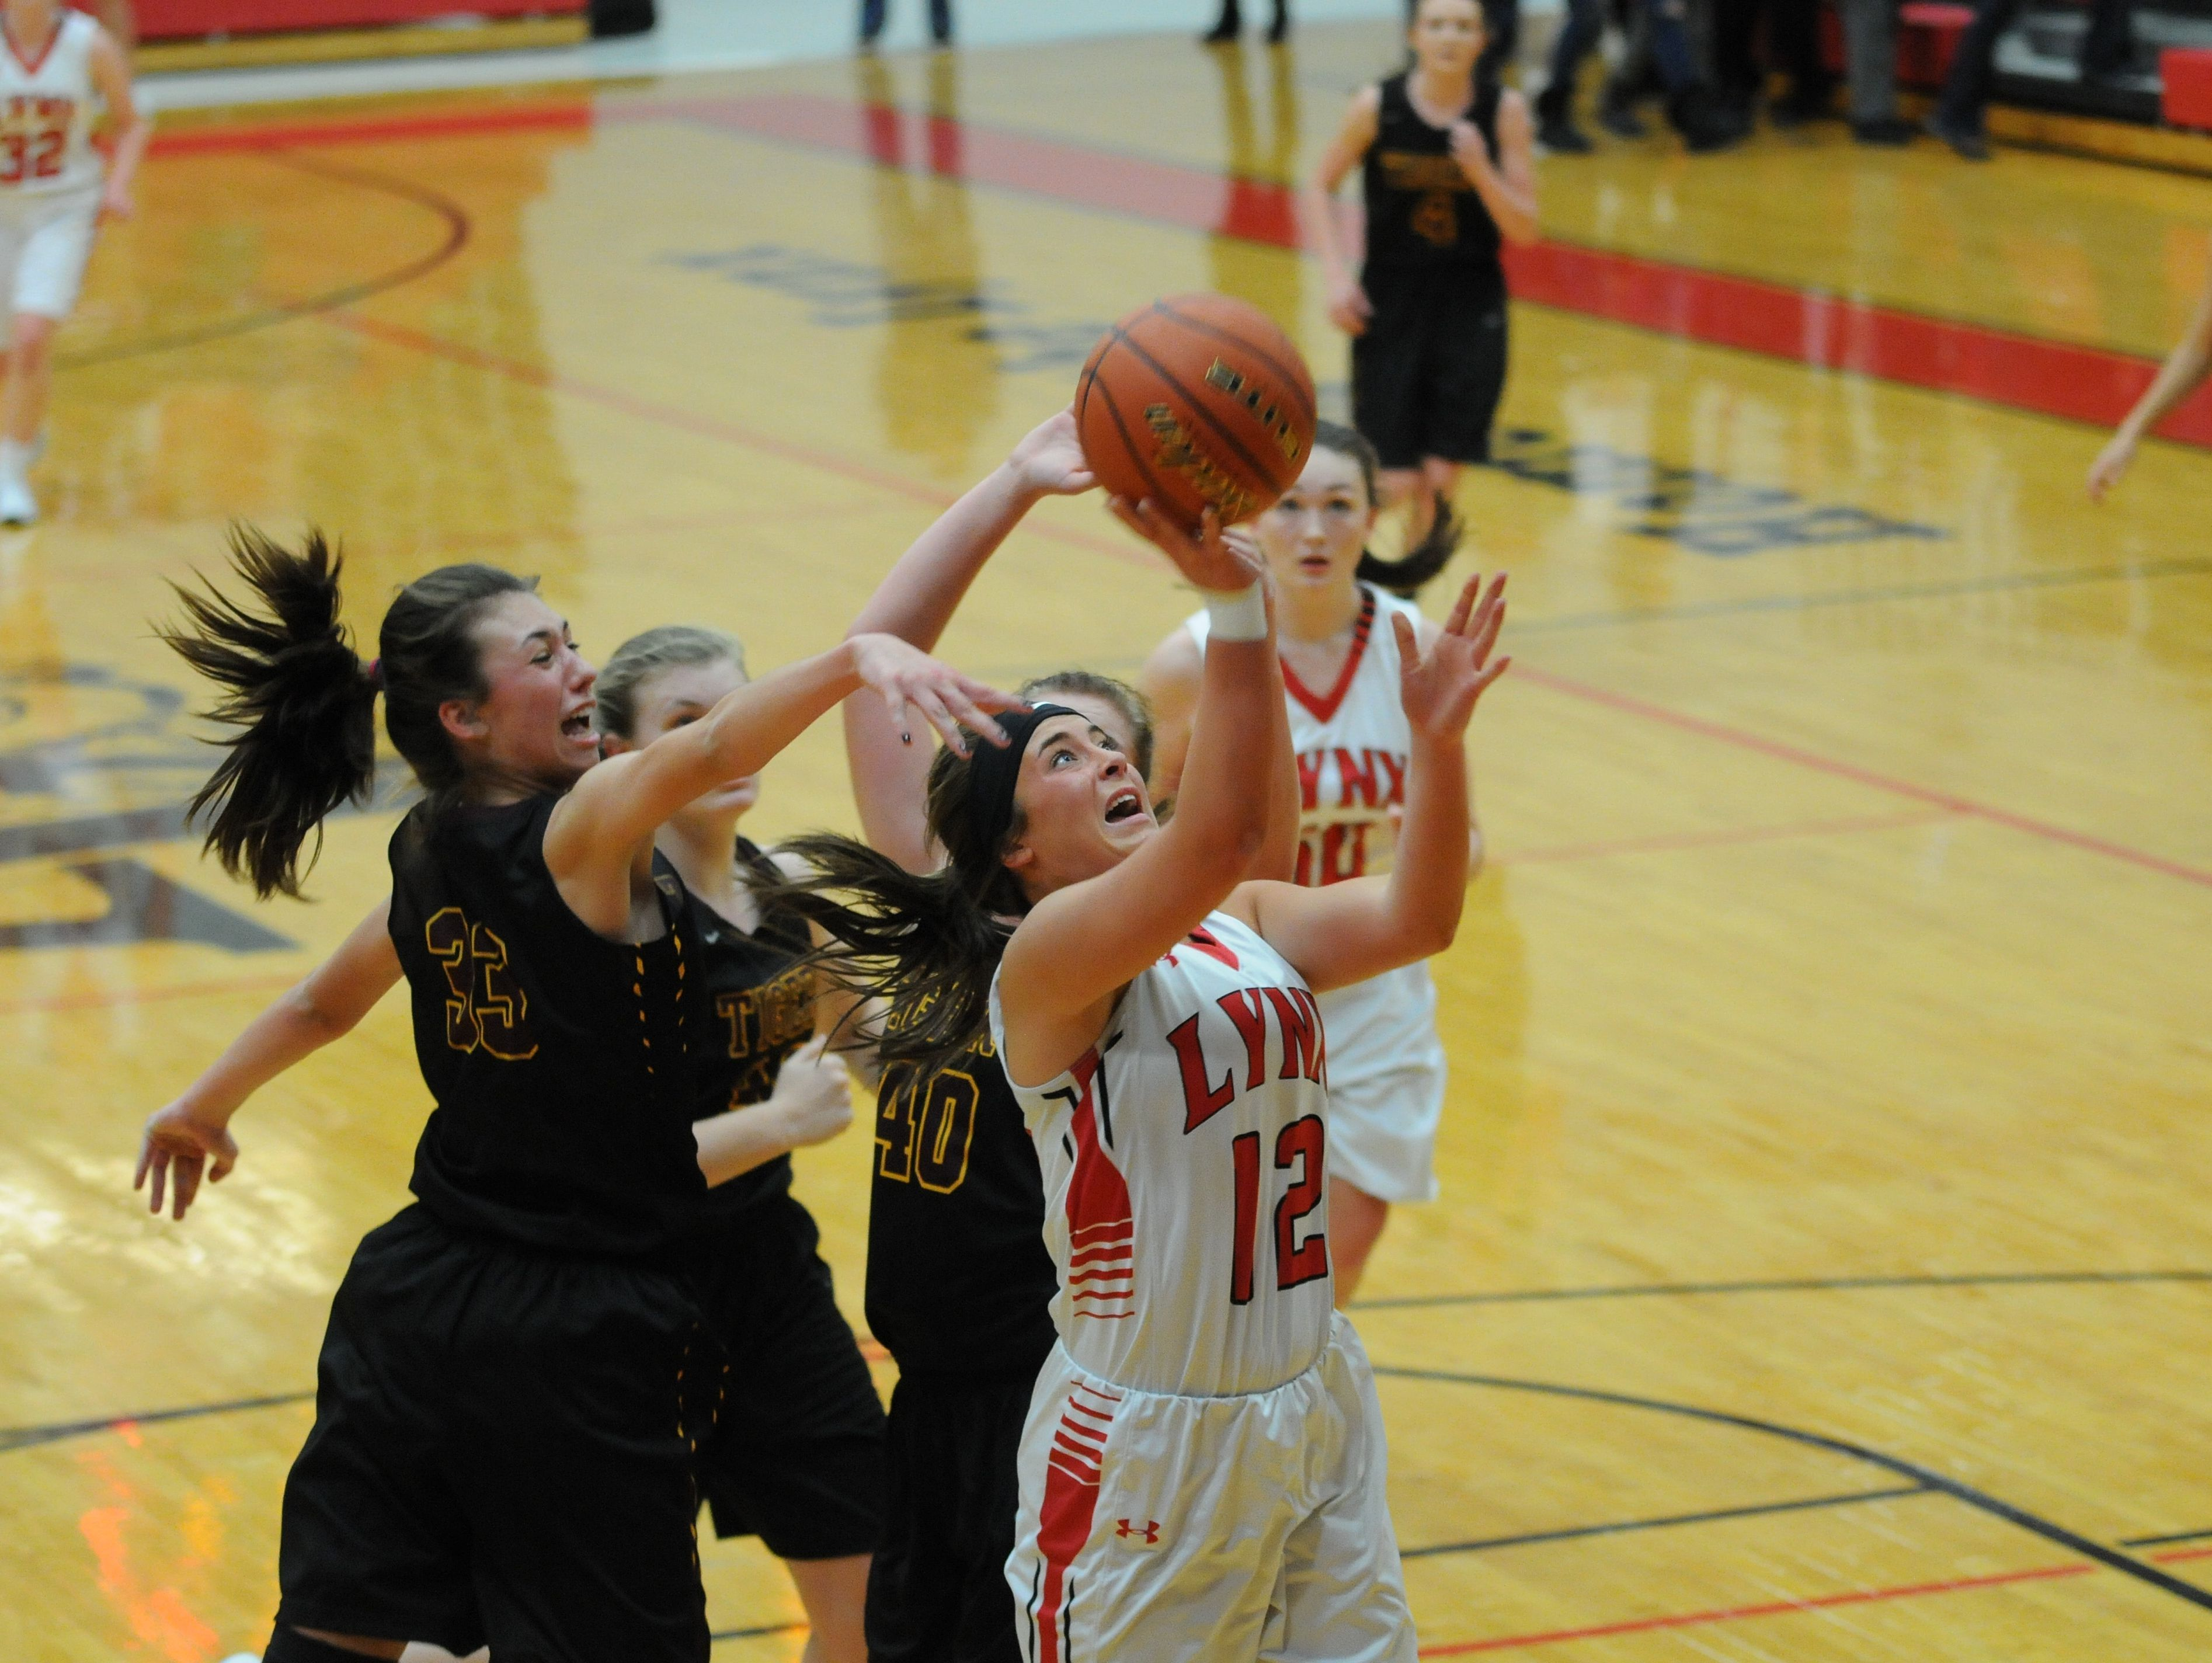 Brandon Valley's Emma Terveer #12 soars to the hoop passed a trio of Harrisburg defenders during varsity action Friday night. Brandon Valley won 65-57 in overtime.